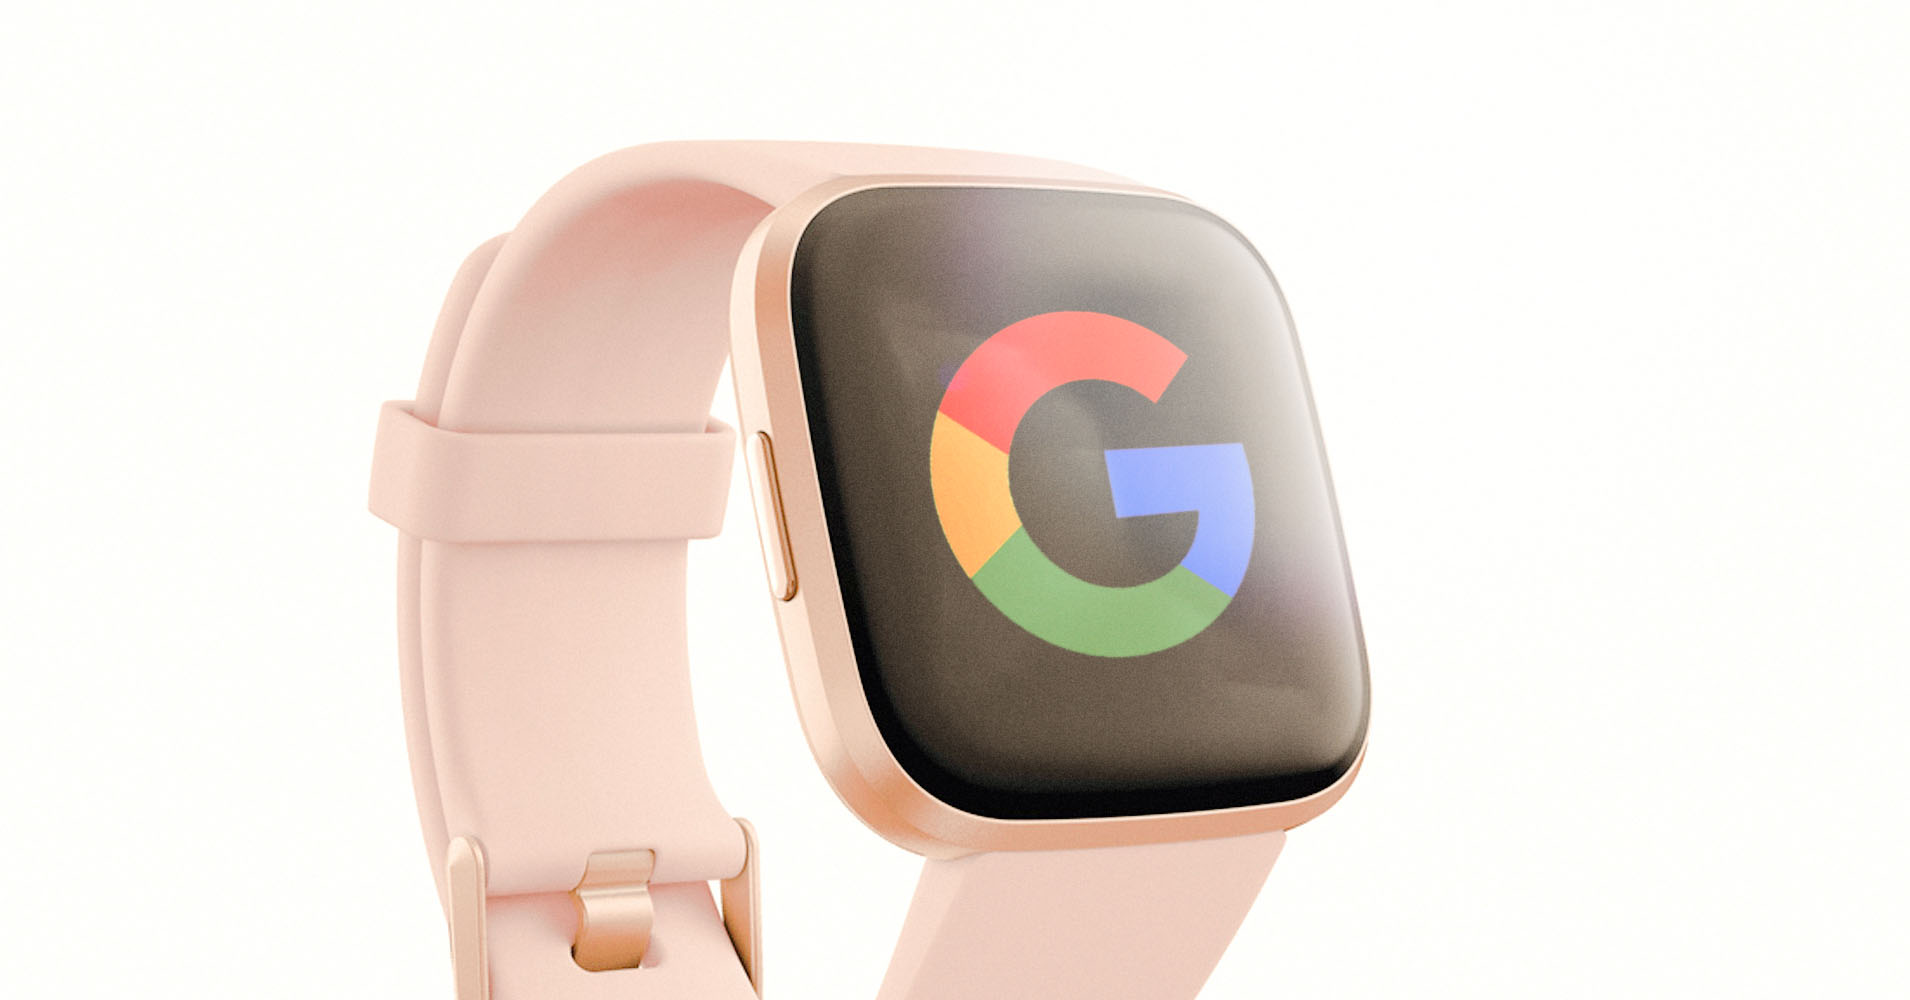 Report: Google is trying to acquire Fitbit